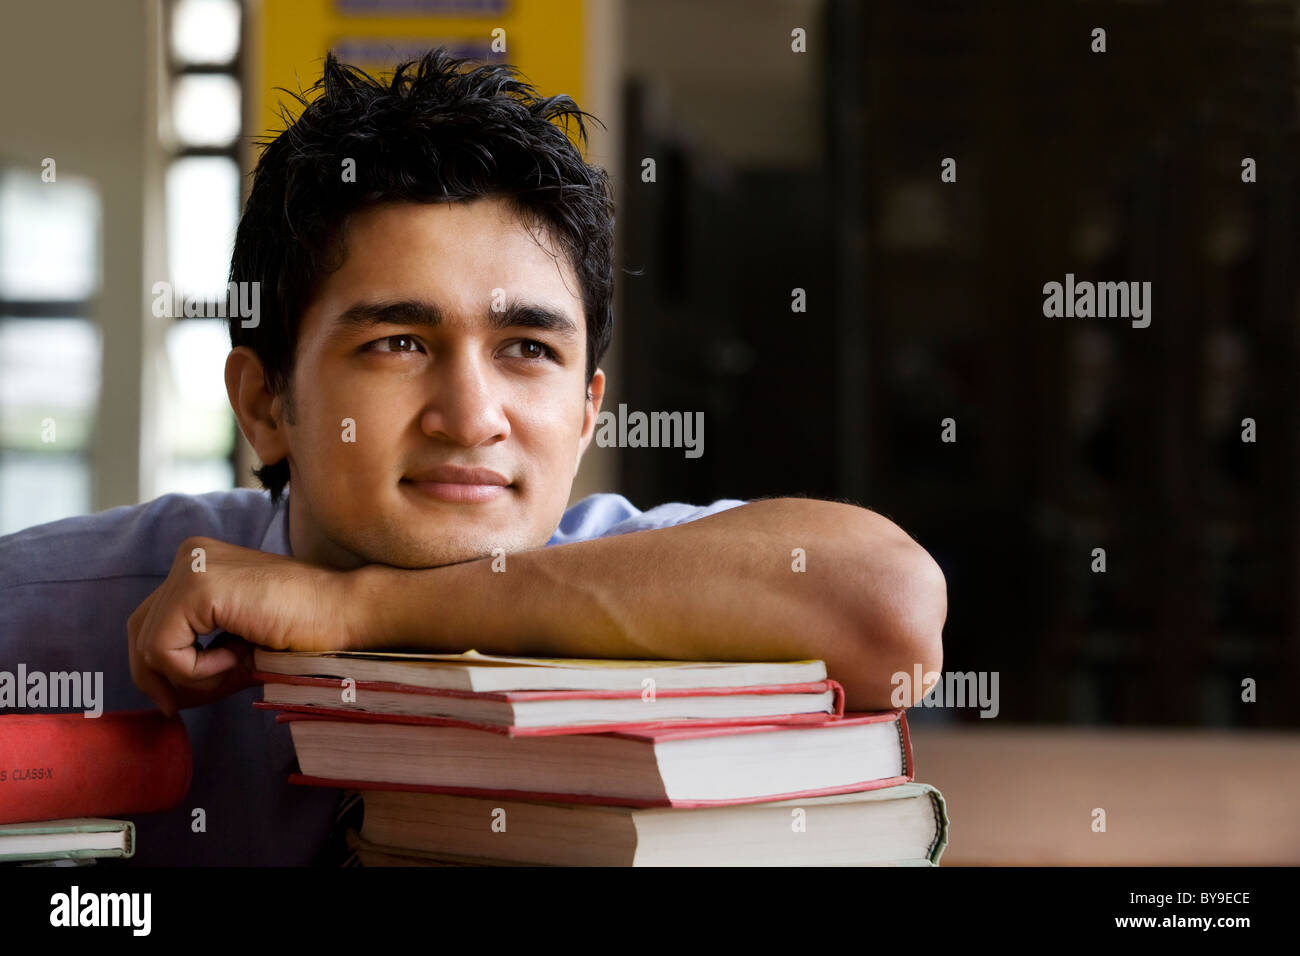 Boy in a school library Stock Photo